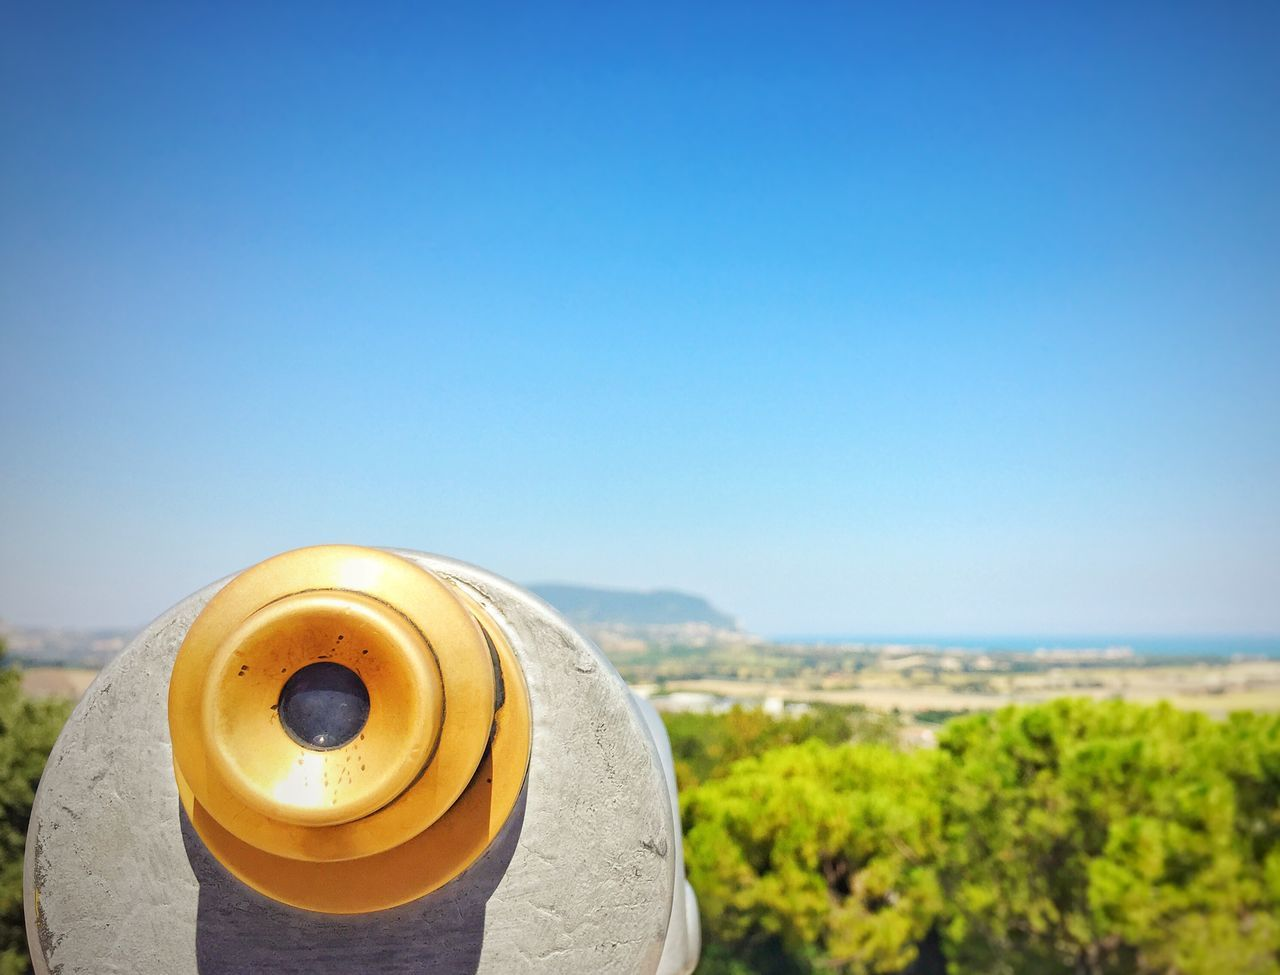 Coin-operated Binoculars Coin Operated Clear Sky Copy Space Blue Close-up Binoculars Focus On Foreground Outdoors Day Exploration Tranquility Scenics Tourism Beauty In Nature High Section Global Communications Telescope Mount Conero Conero Italy Tourism Italy Adriatic Sea Adriatic Coast